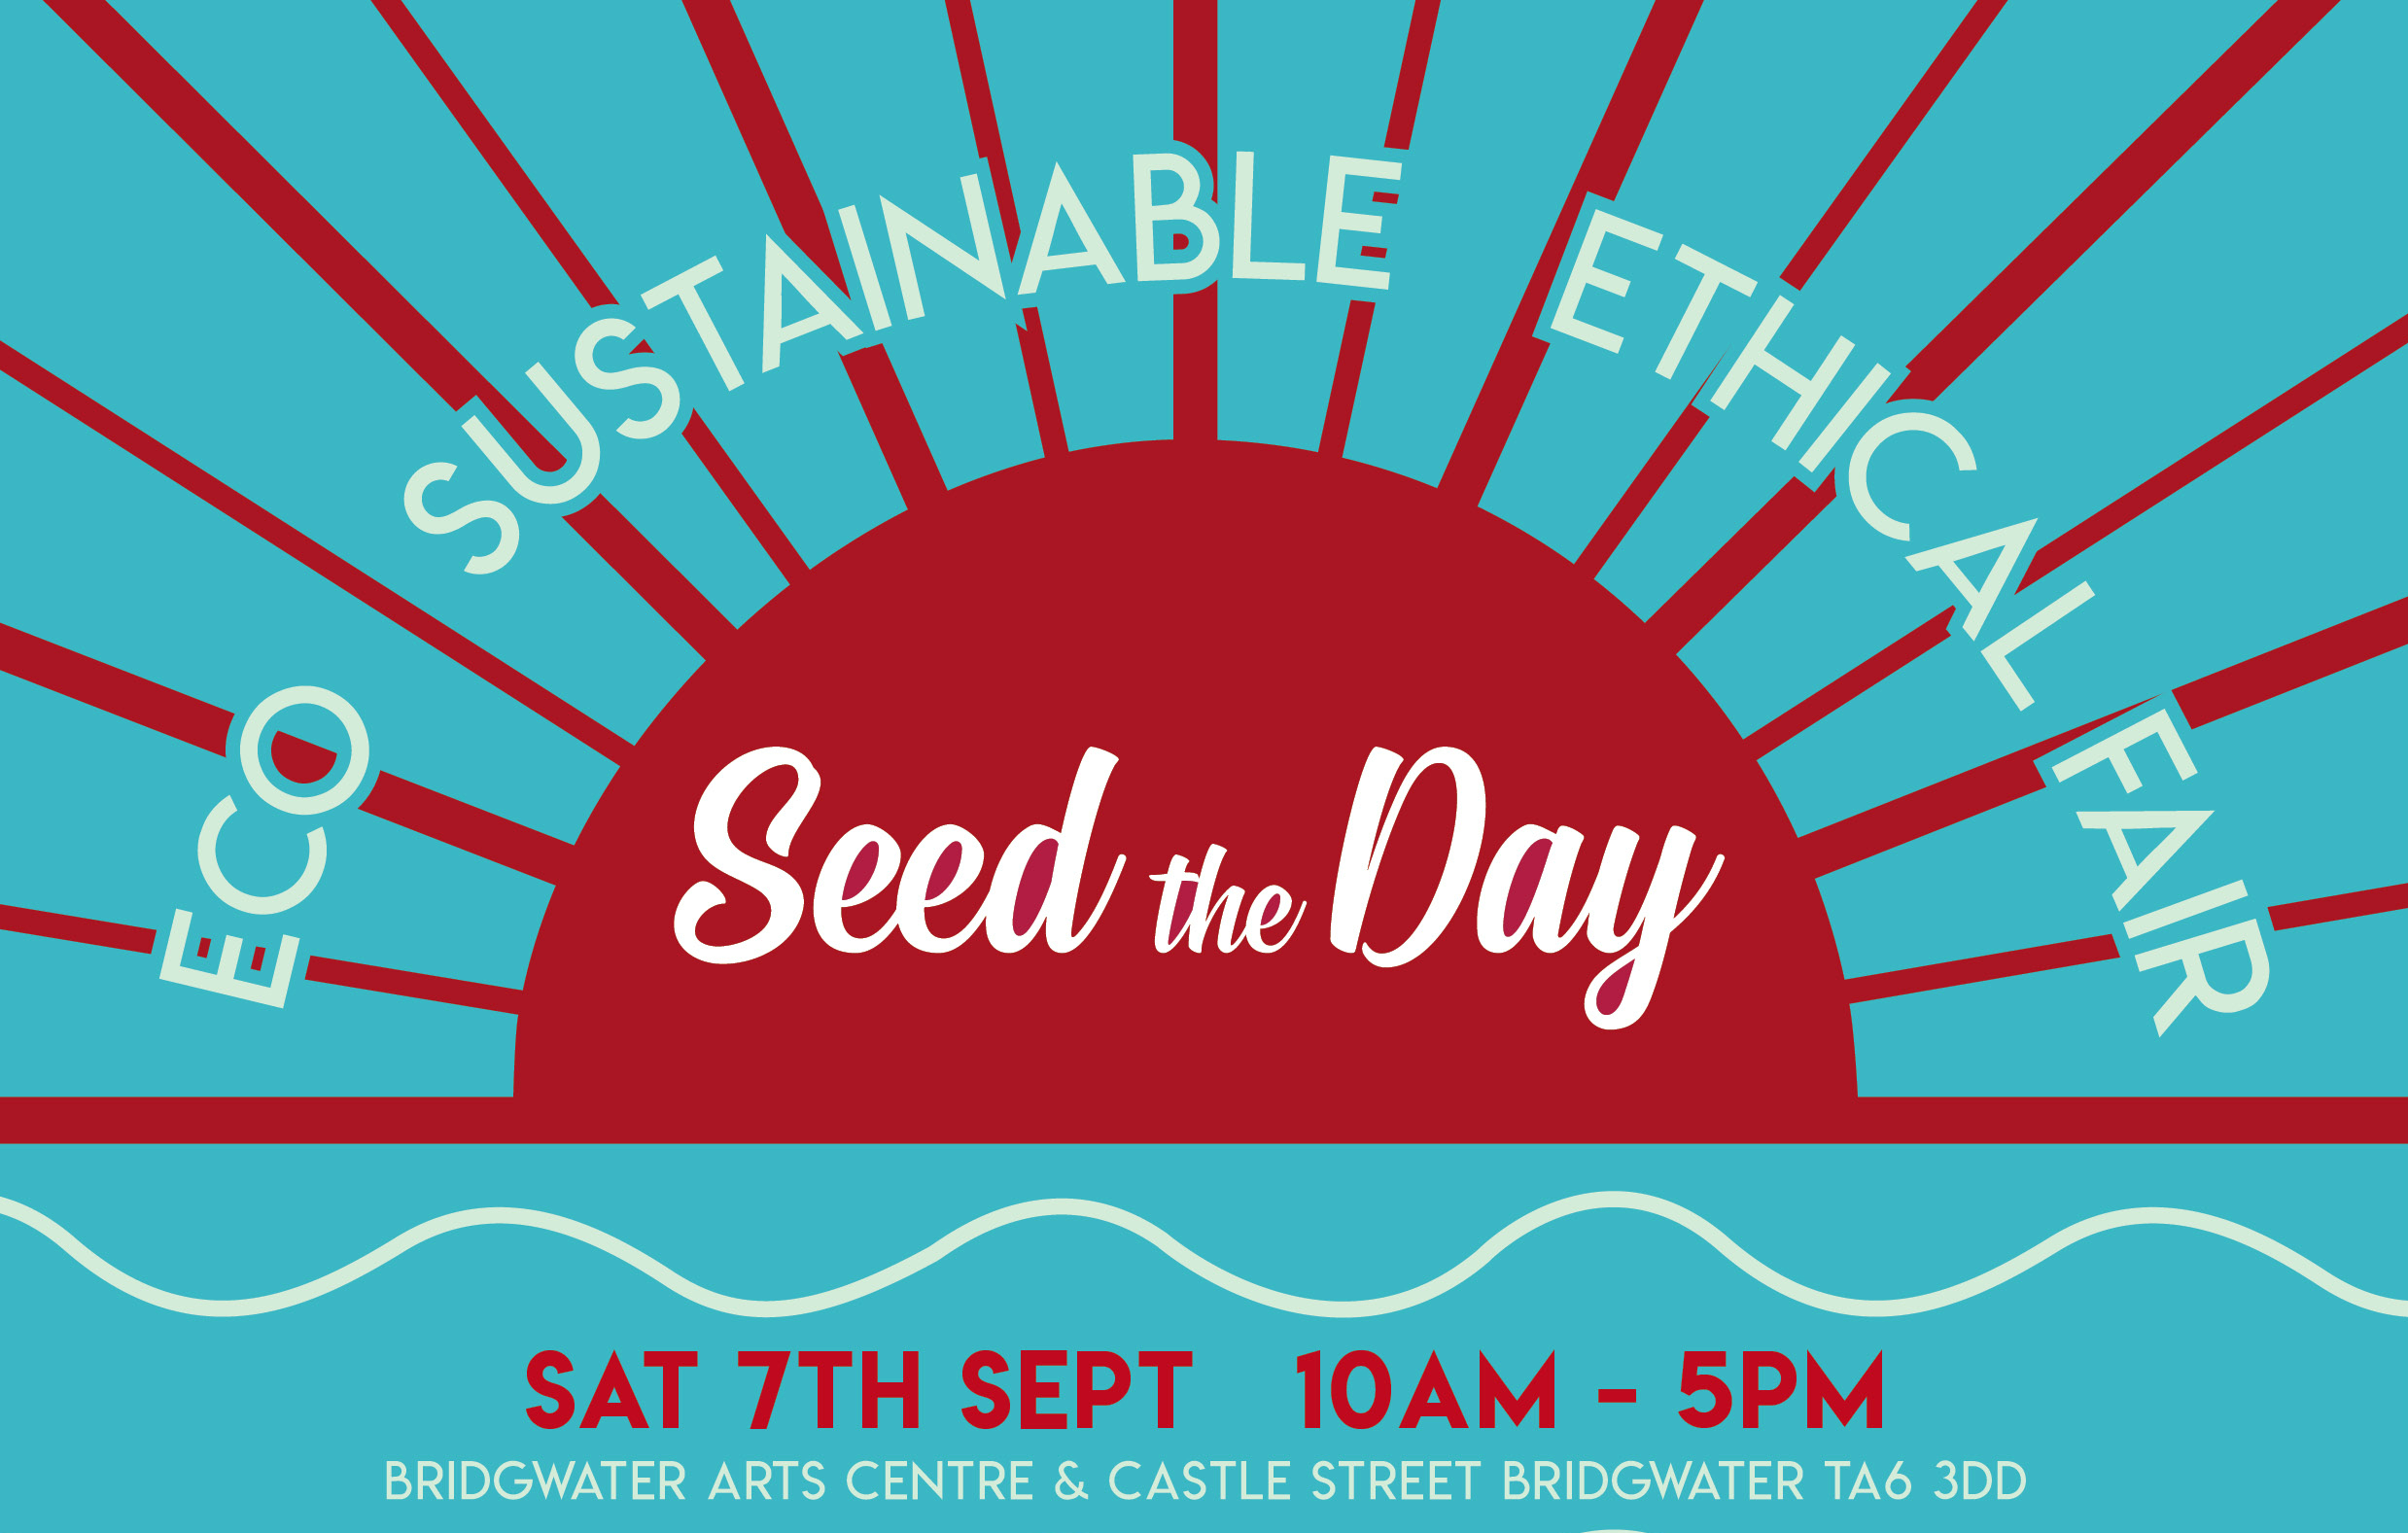 seed the day graphic -PROOF-BRIGHT BLUE RE.jpg